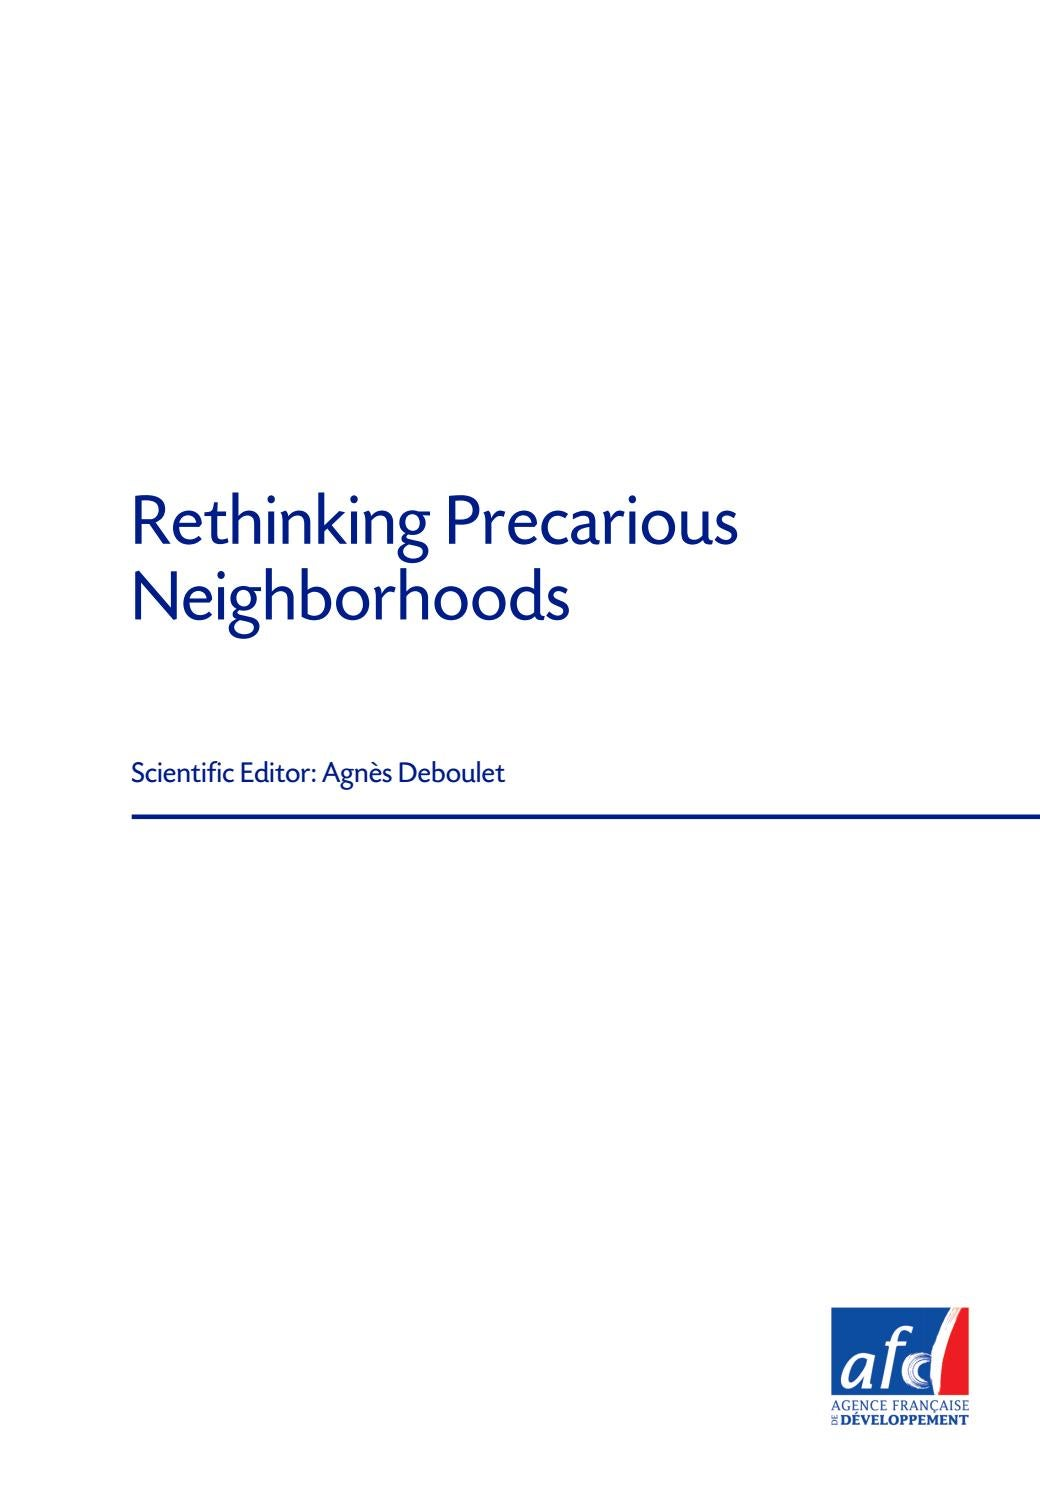 Etudes De Lafd N 13 Rethinking Precarious Neighborhoods By Solid State Relay Jakarta Agence Franaise Dveloppement Issuu